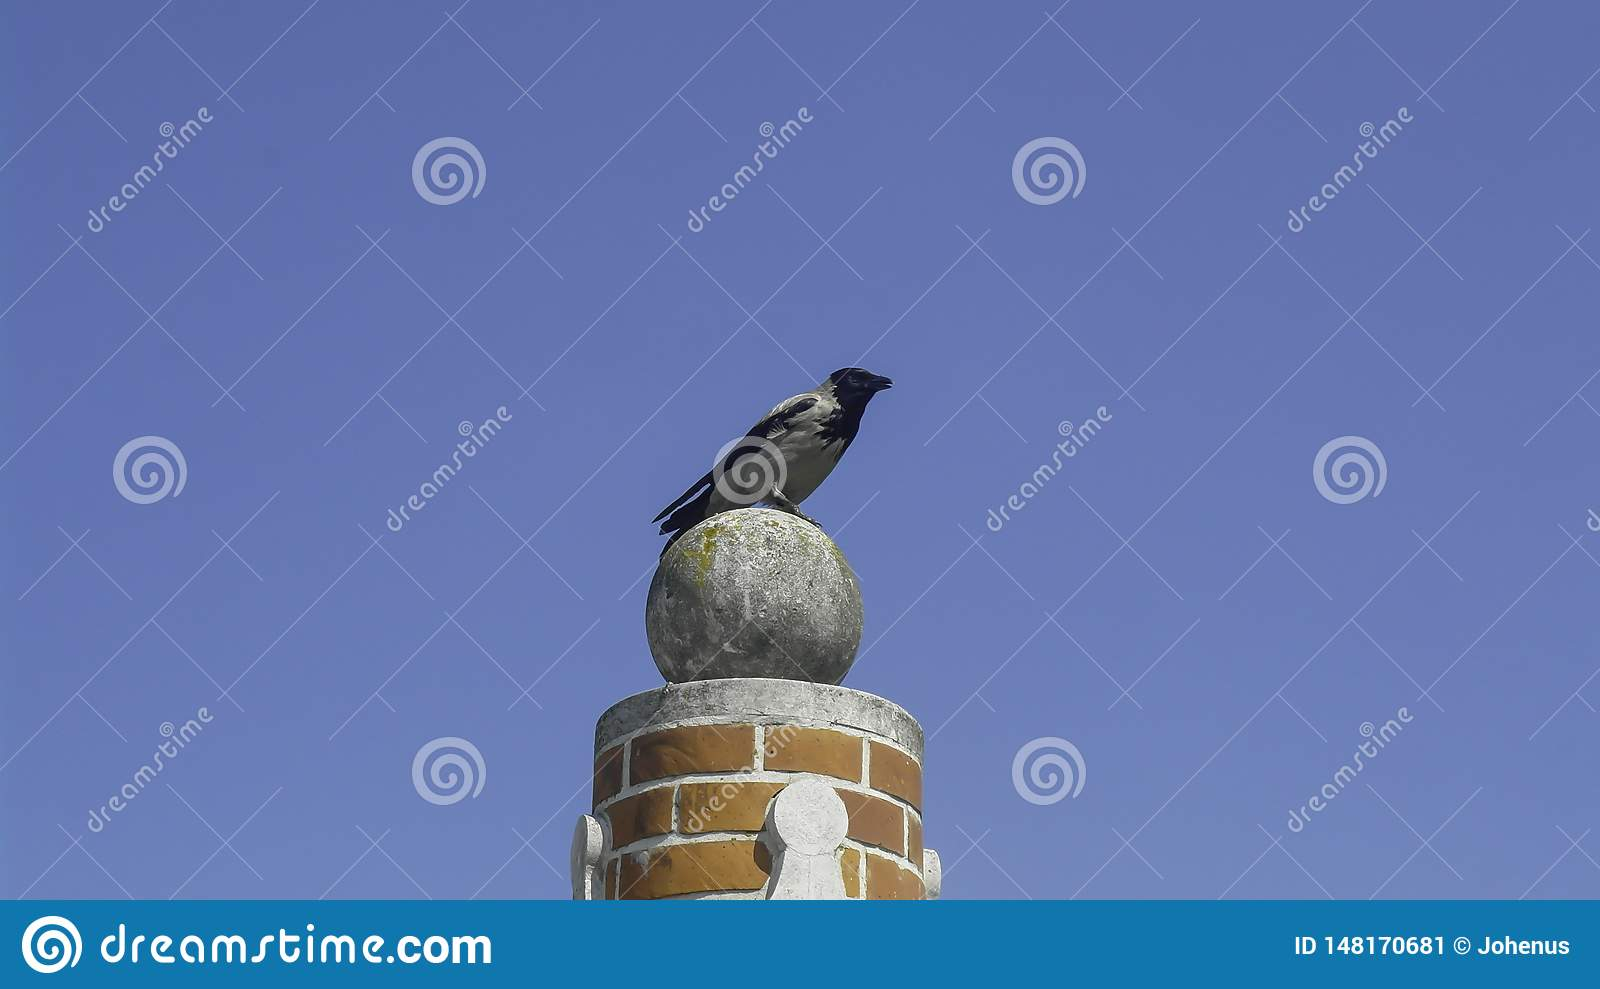 A magpie sits on a column